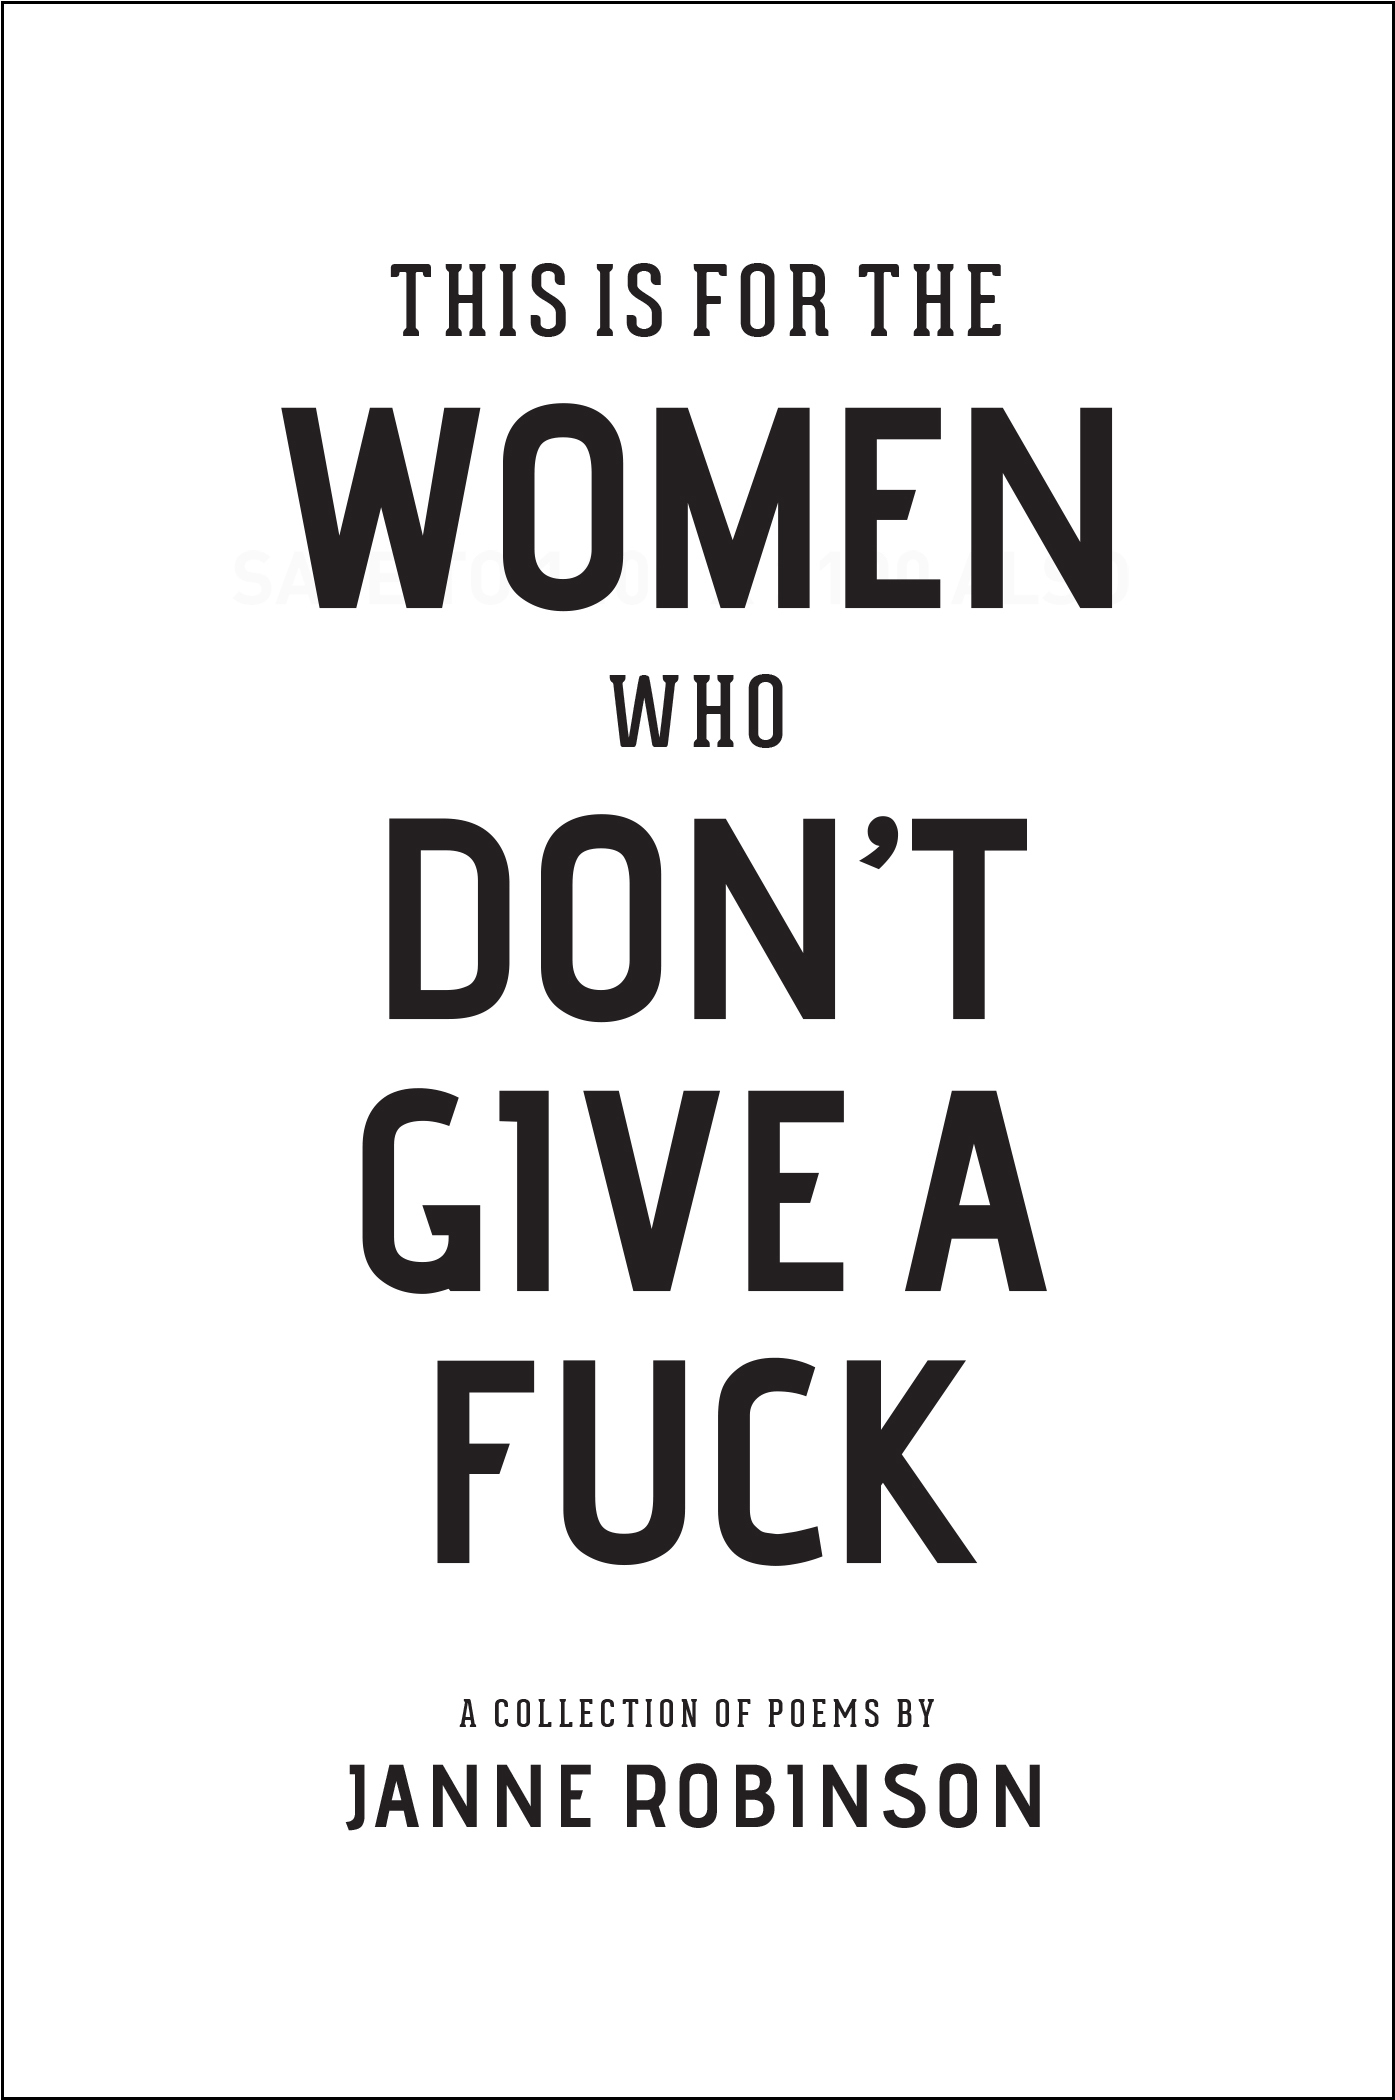 this is for the women who don't give a fk